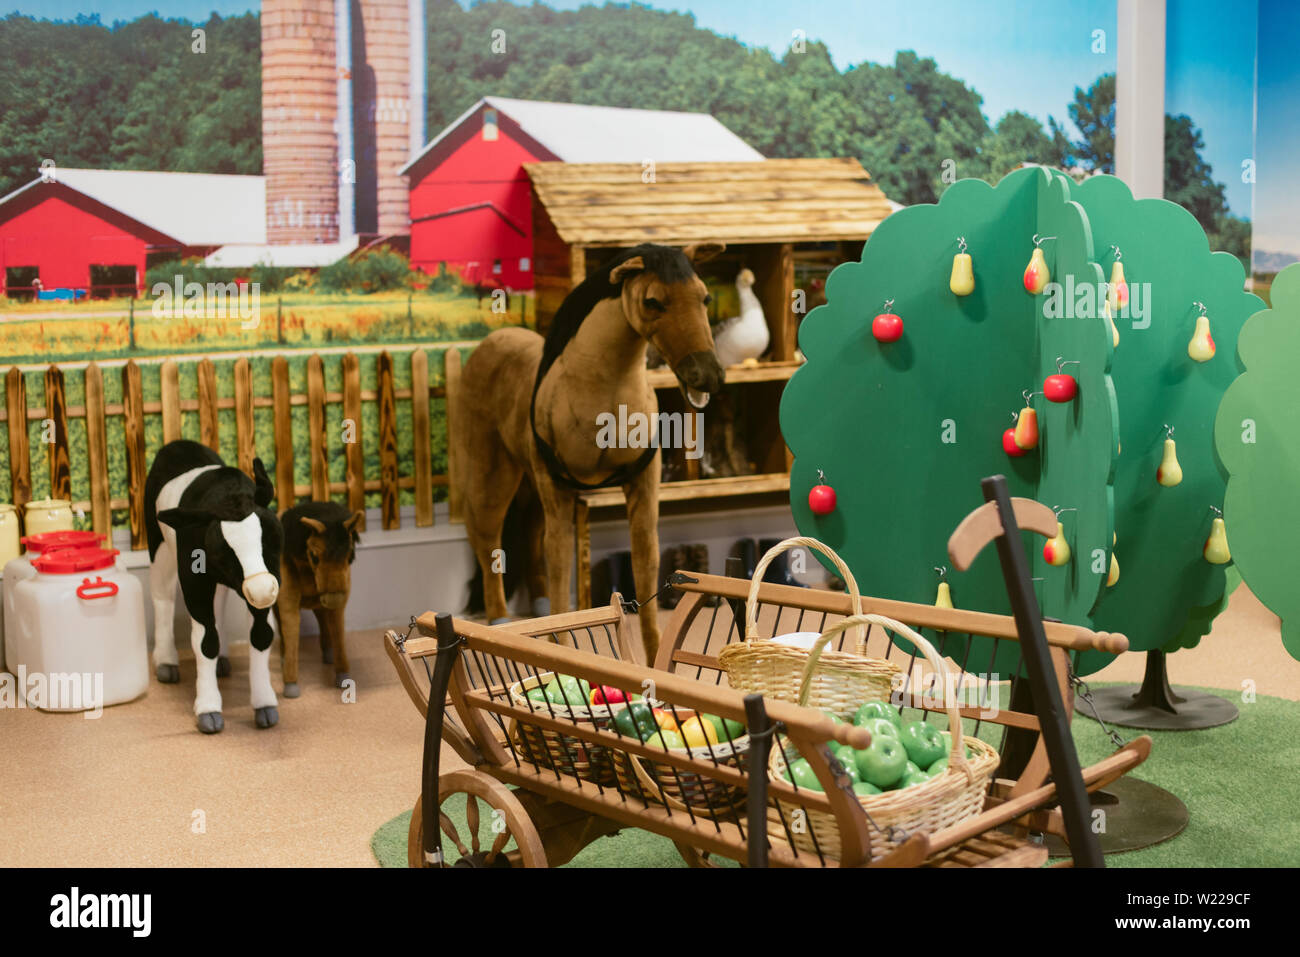 children's toy farm. Toy sheep, pig, cow large on a farm Stock Photo